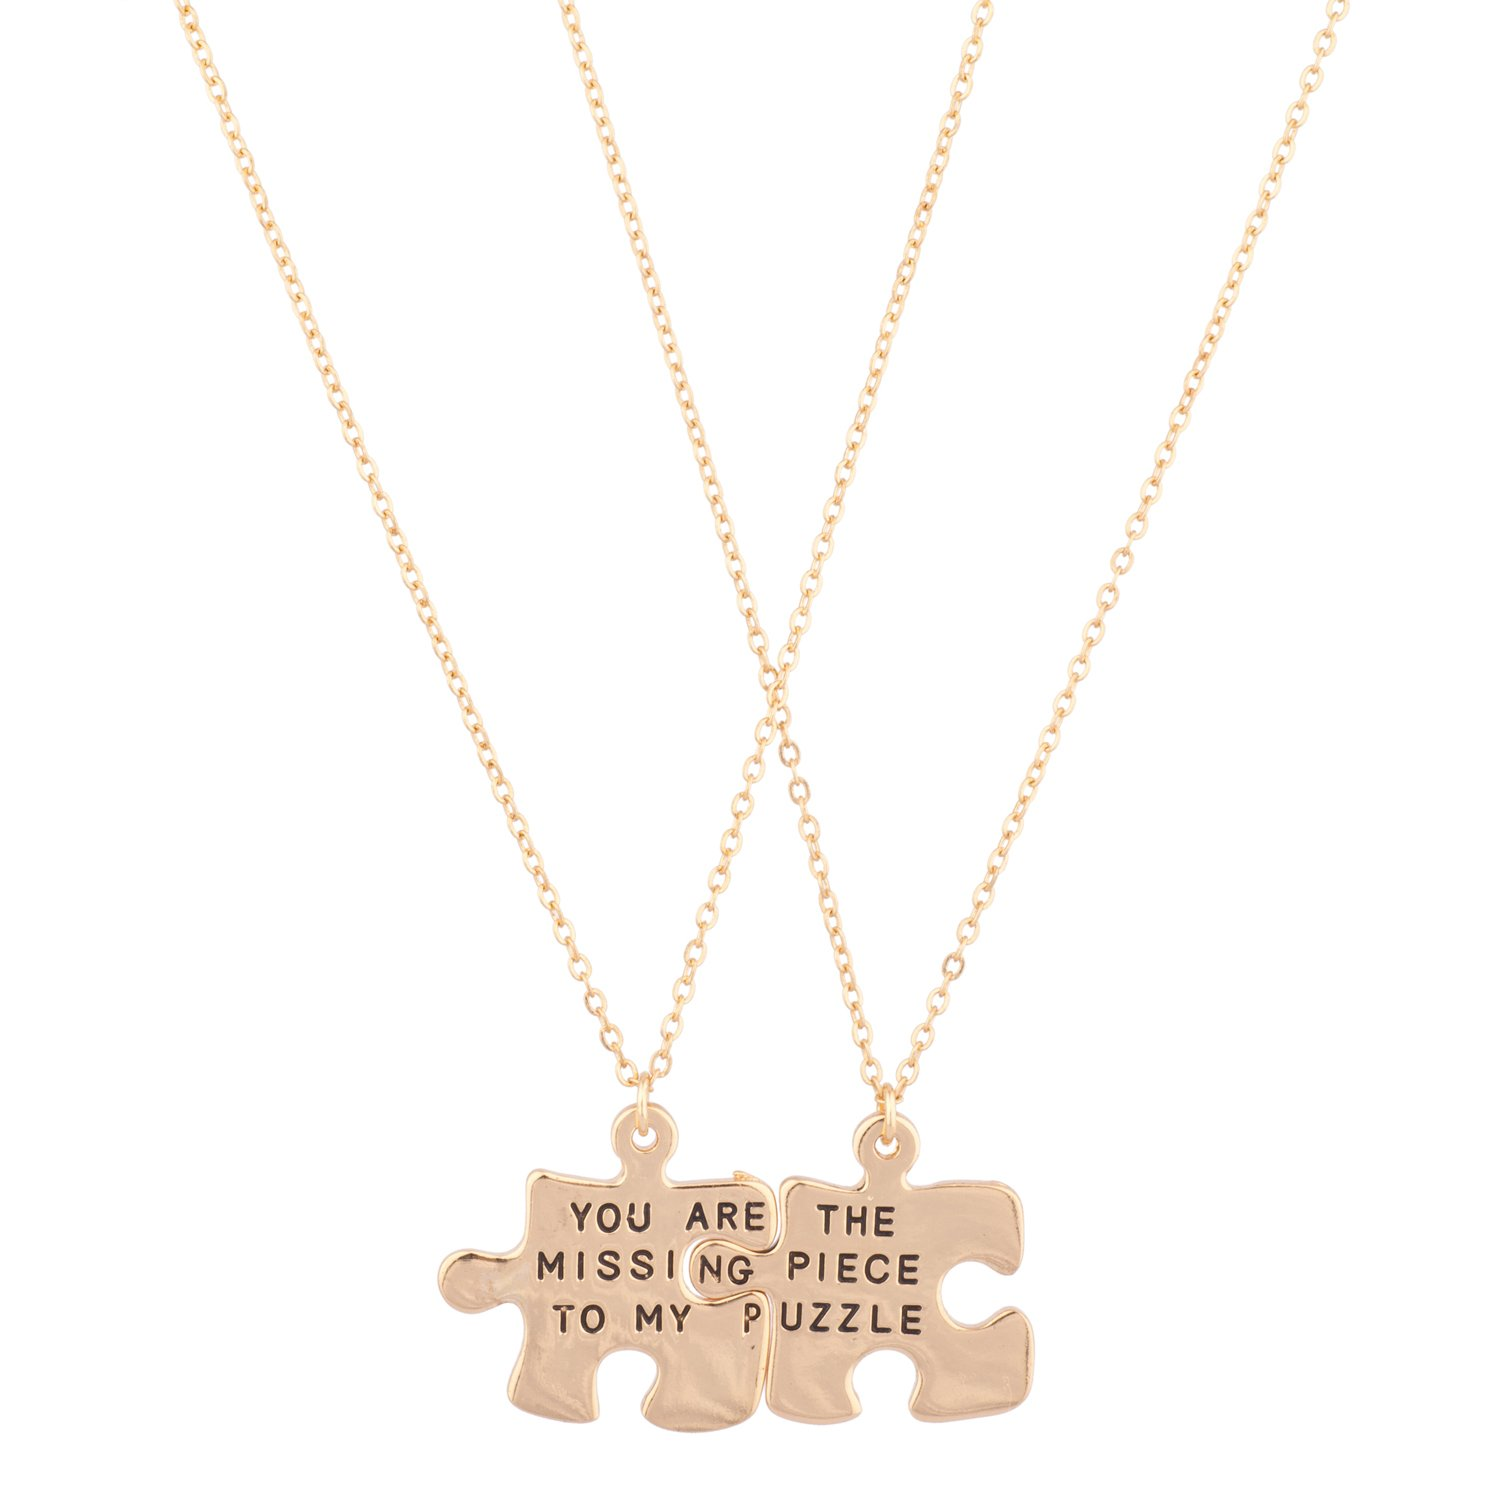 are htm kb to mpp necklace the my piece missing enlarge p puzzle jewelry quote you photo